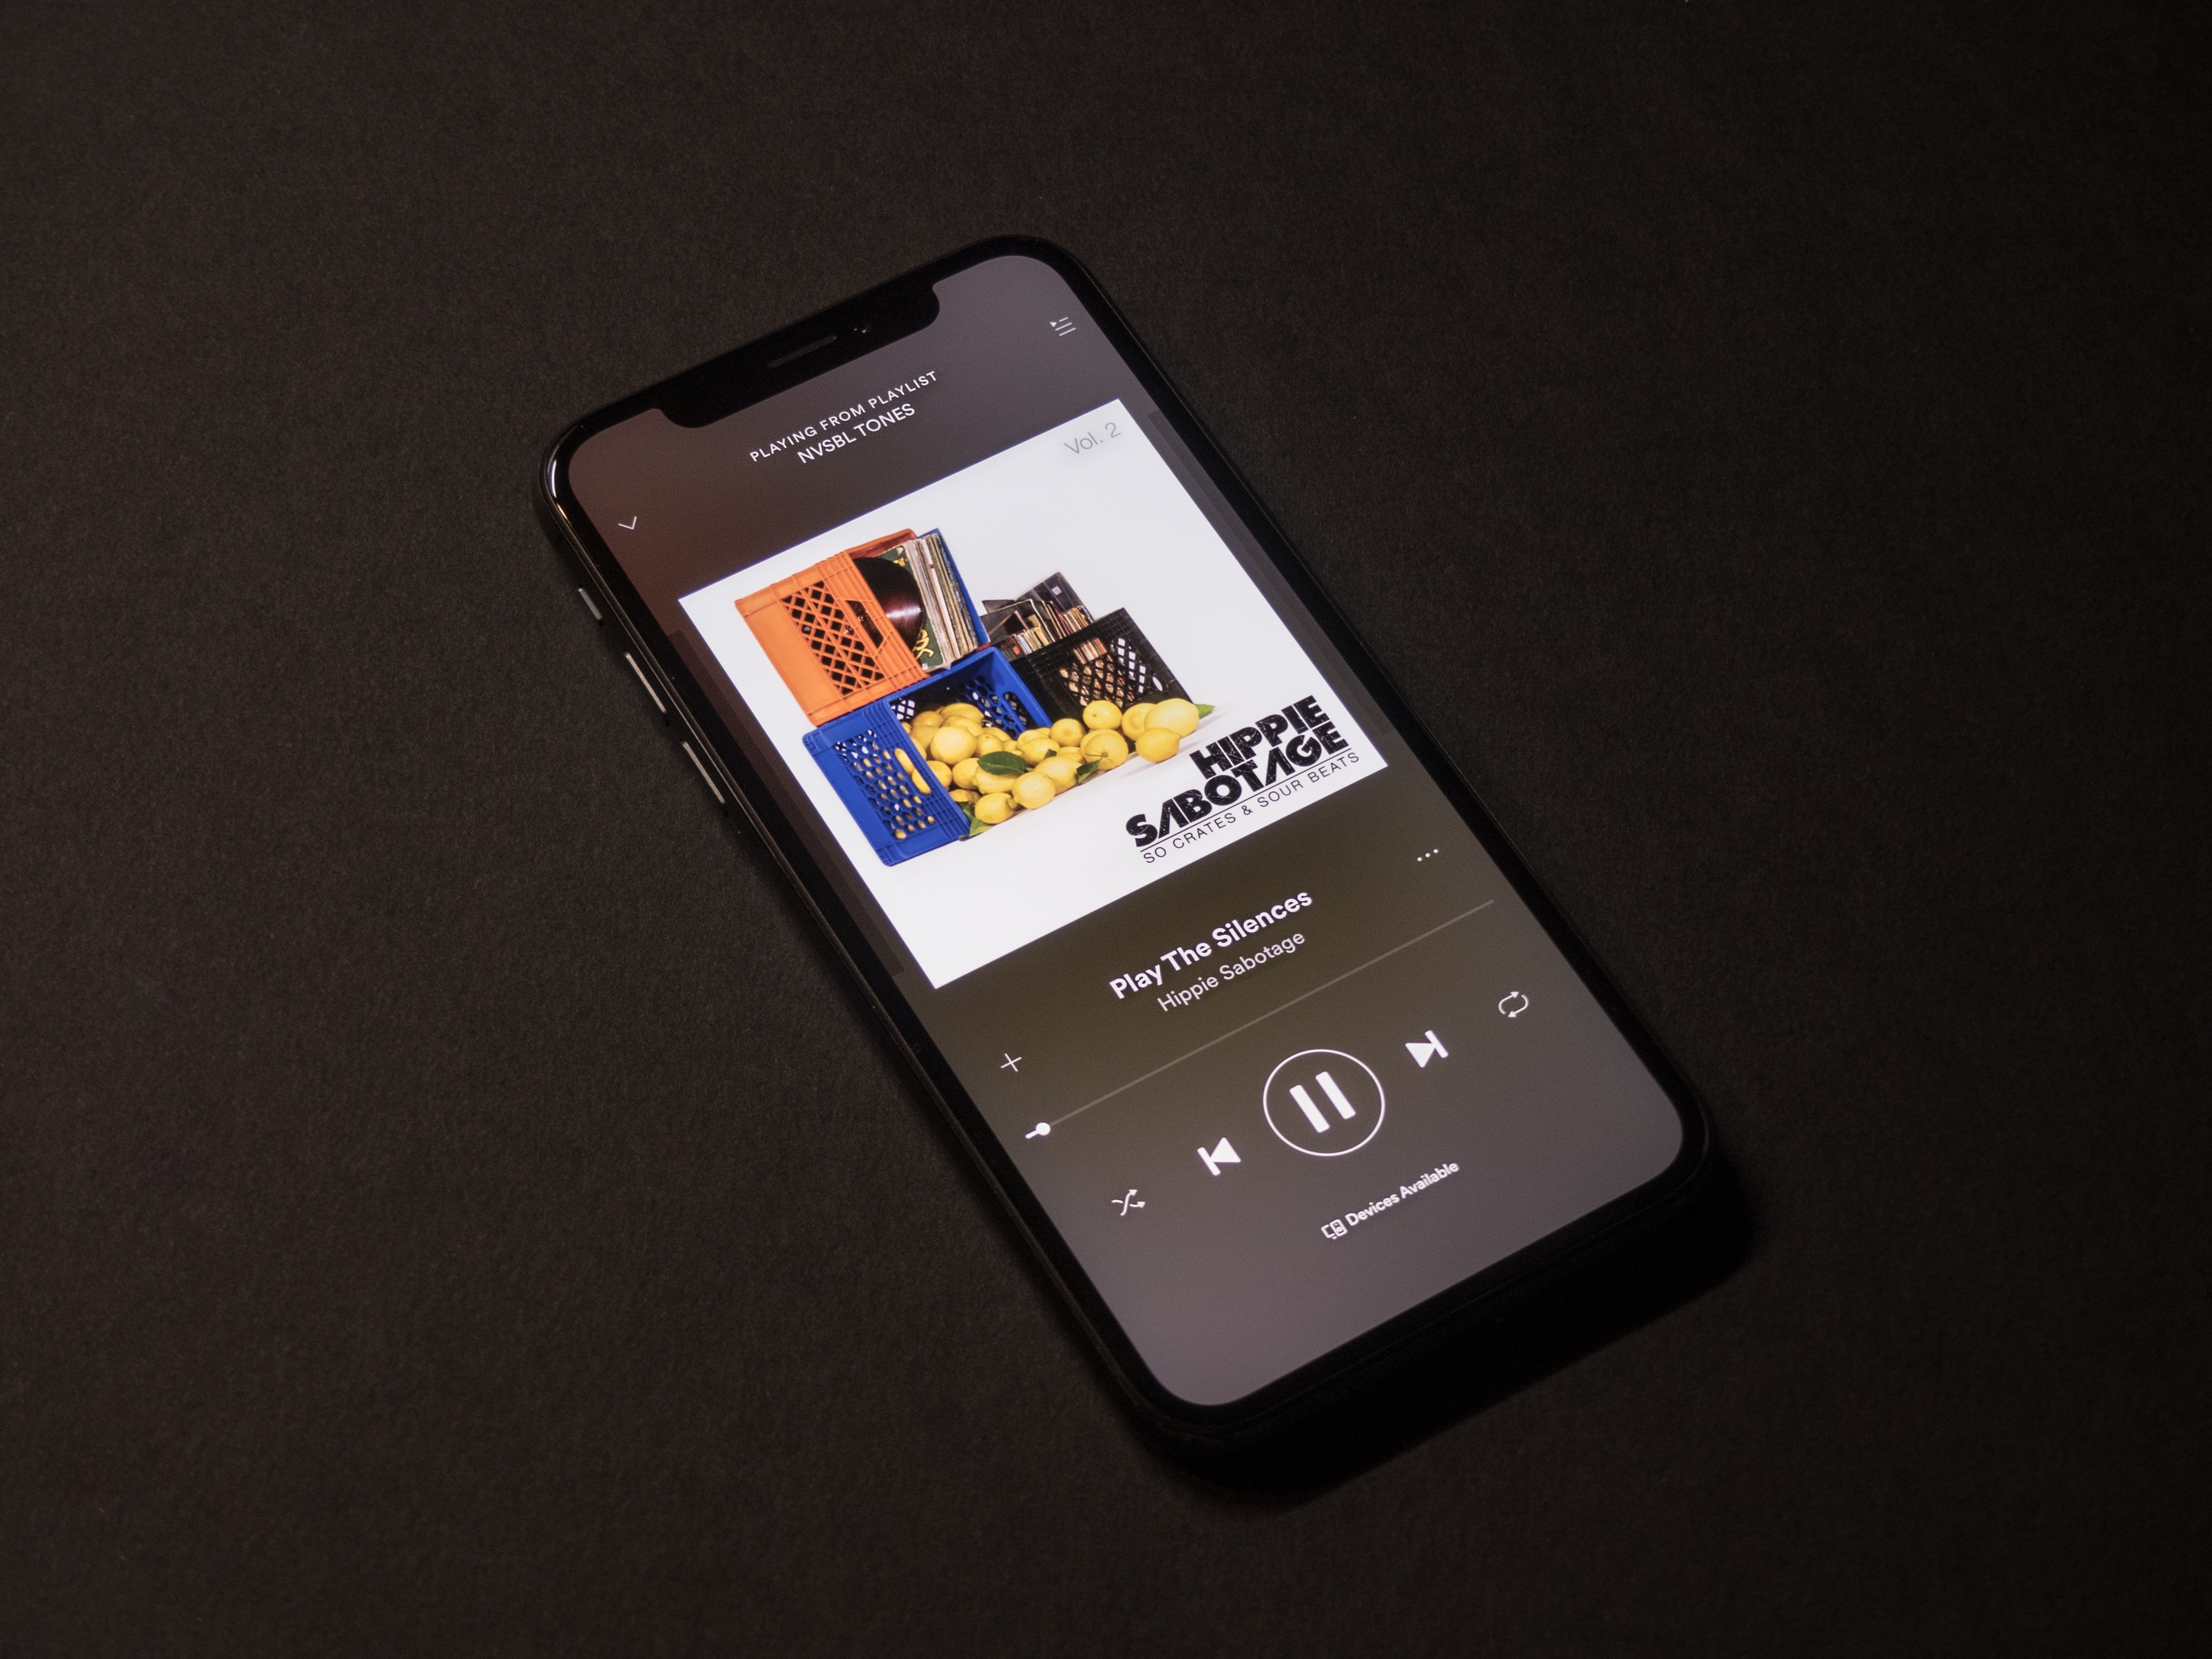 Spotify blocks pirated versions of its premium streaming